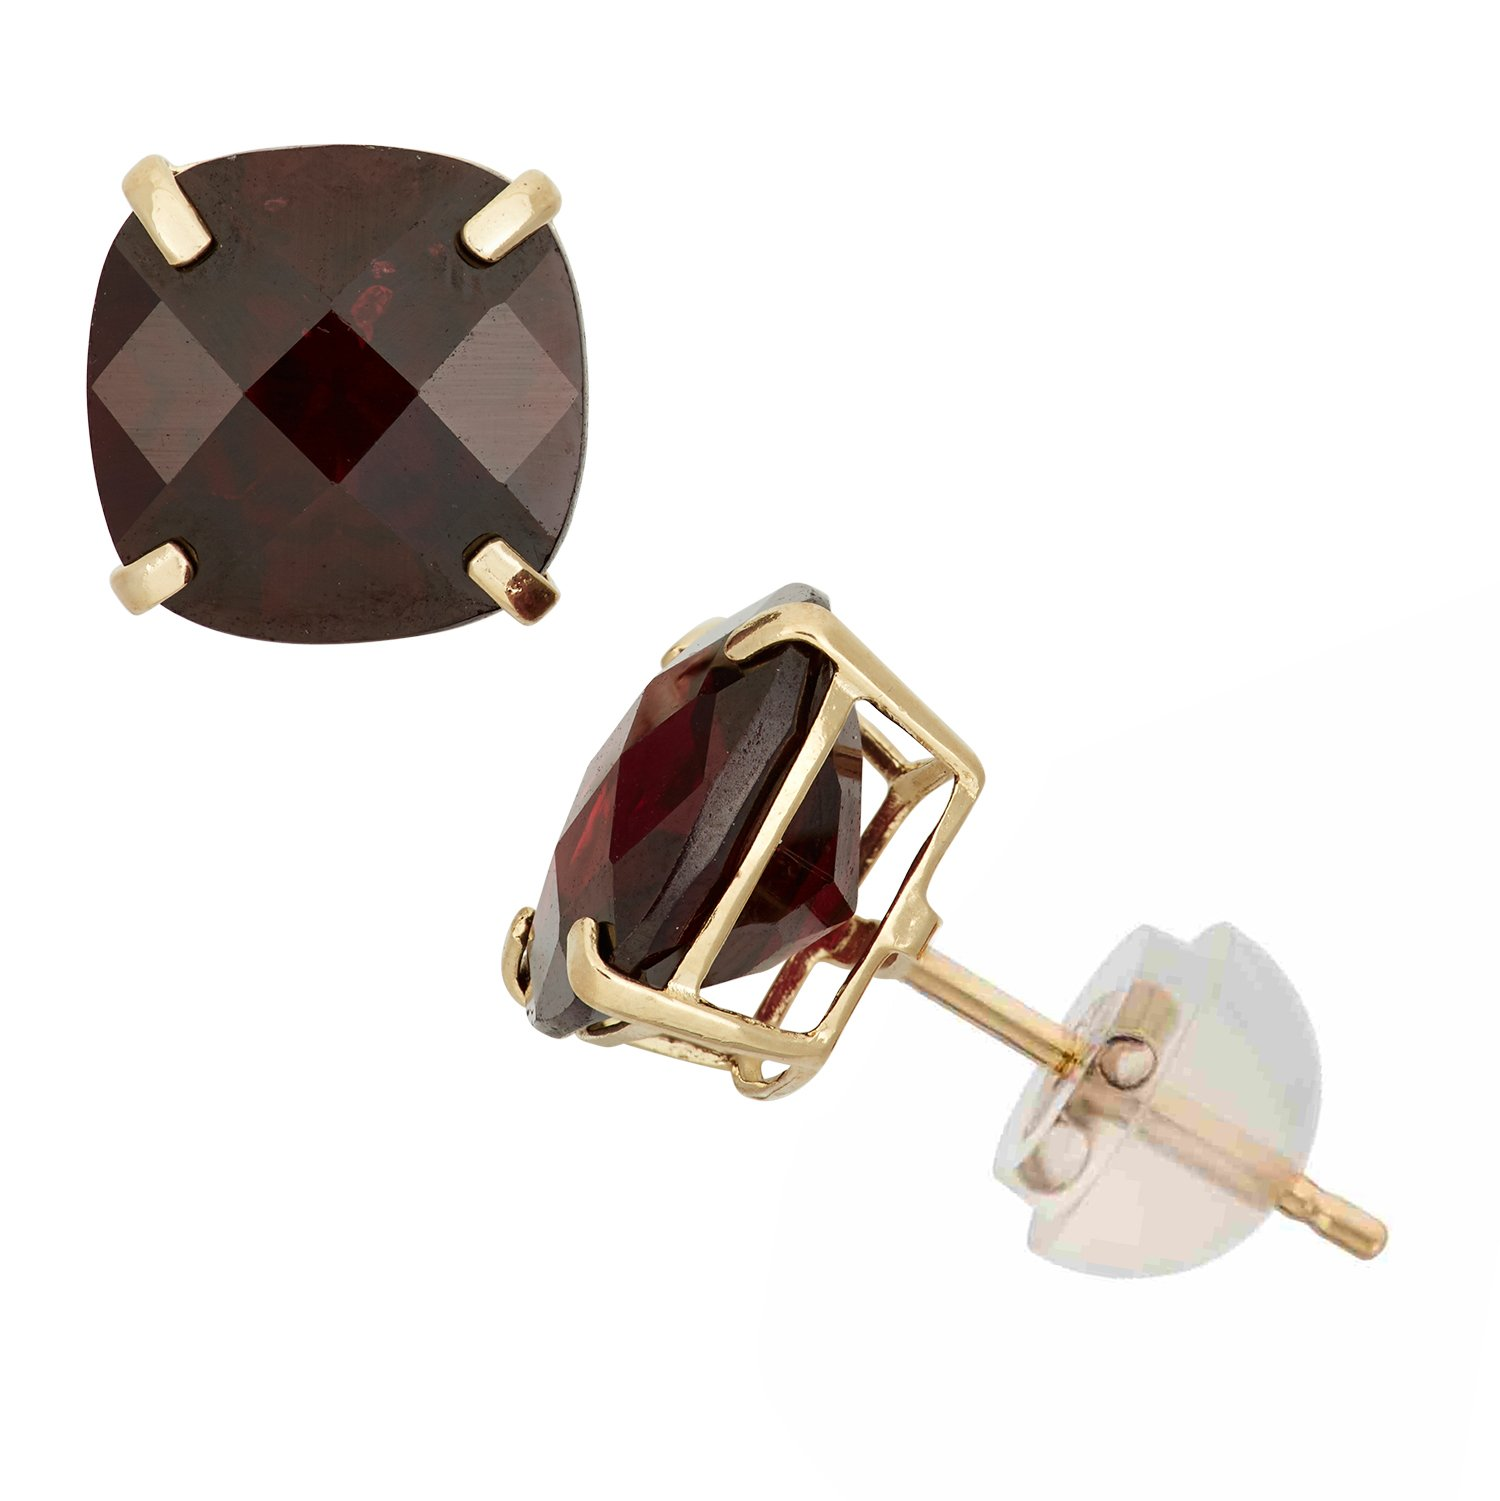 Garnet Cushion-Cut Stud Earrings in 10K Yellow Gold, 8x8mm, Comfort Fit